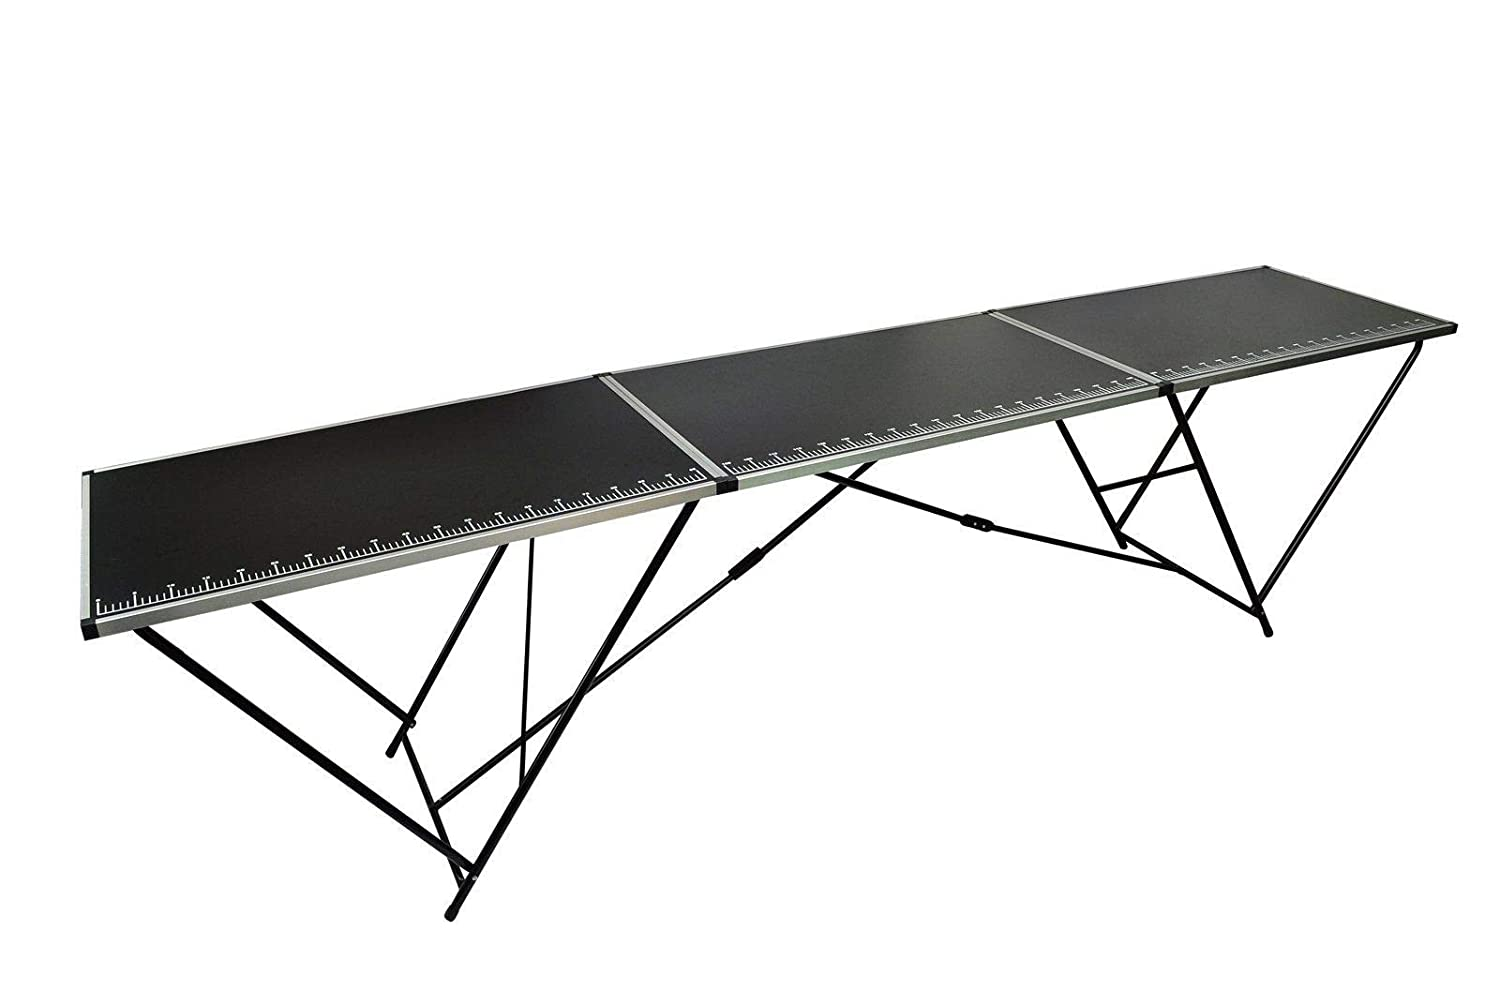 Dirty Pro Tools™ 3M Wallpaper Pasting Table Decorating Measuring Folding Portable Aluminium 3 meter